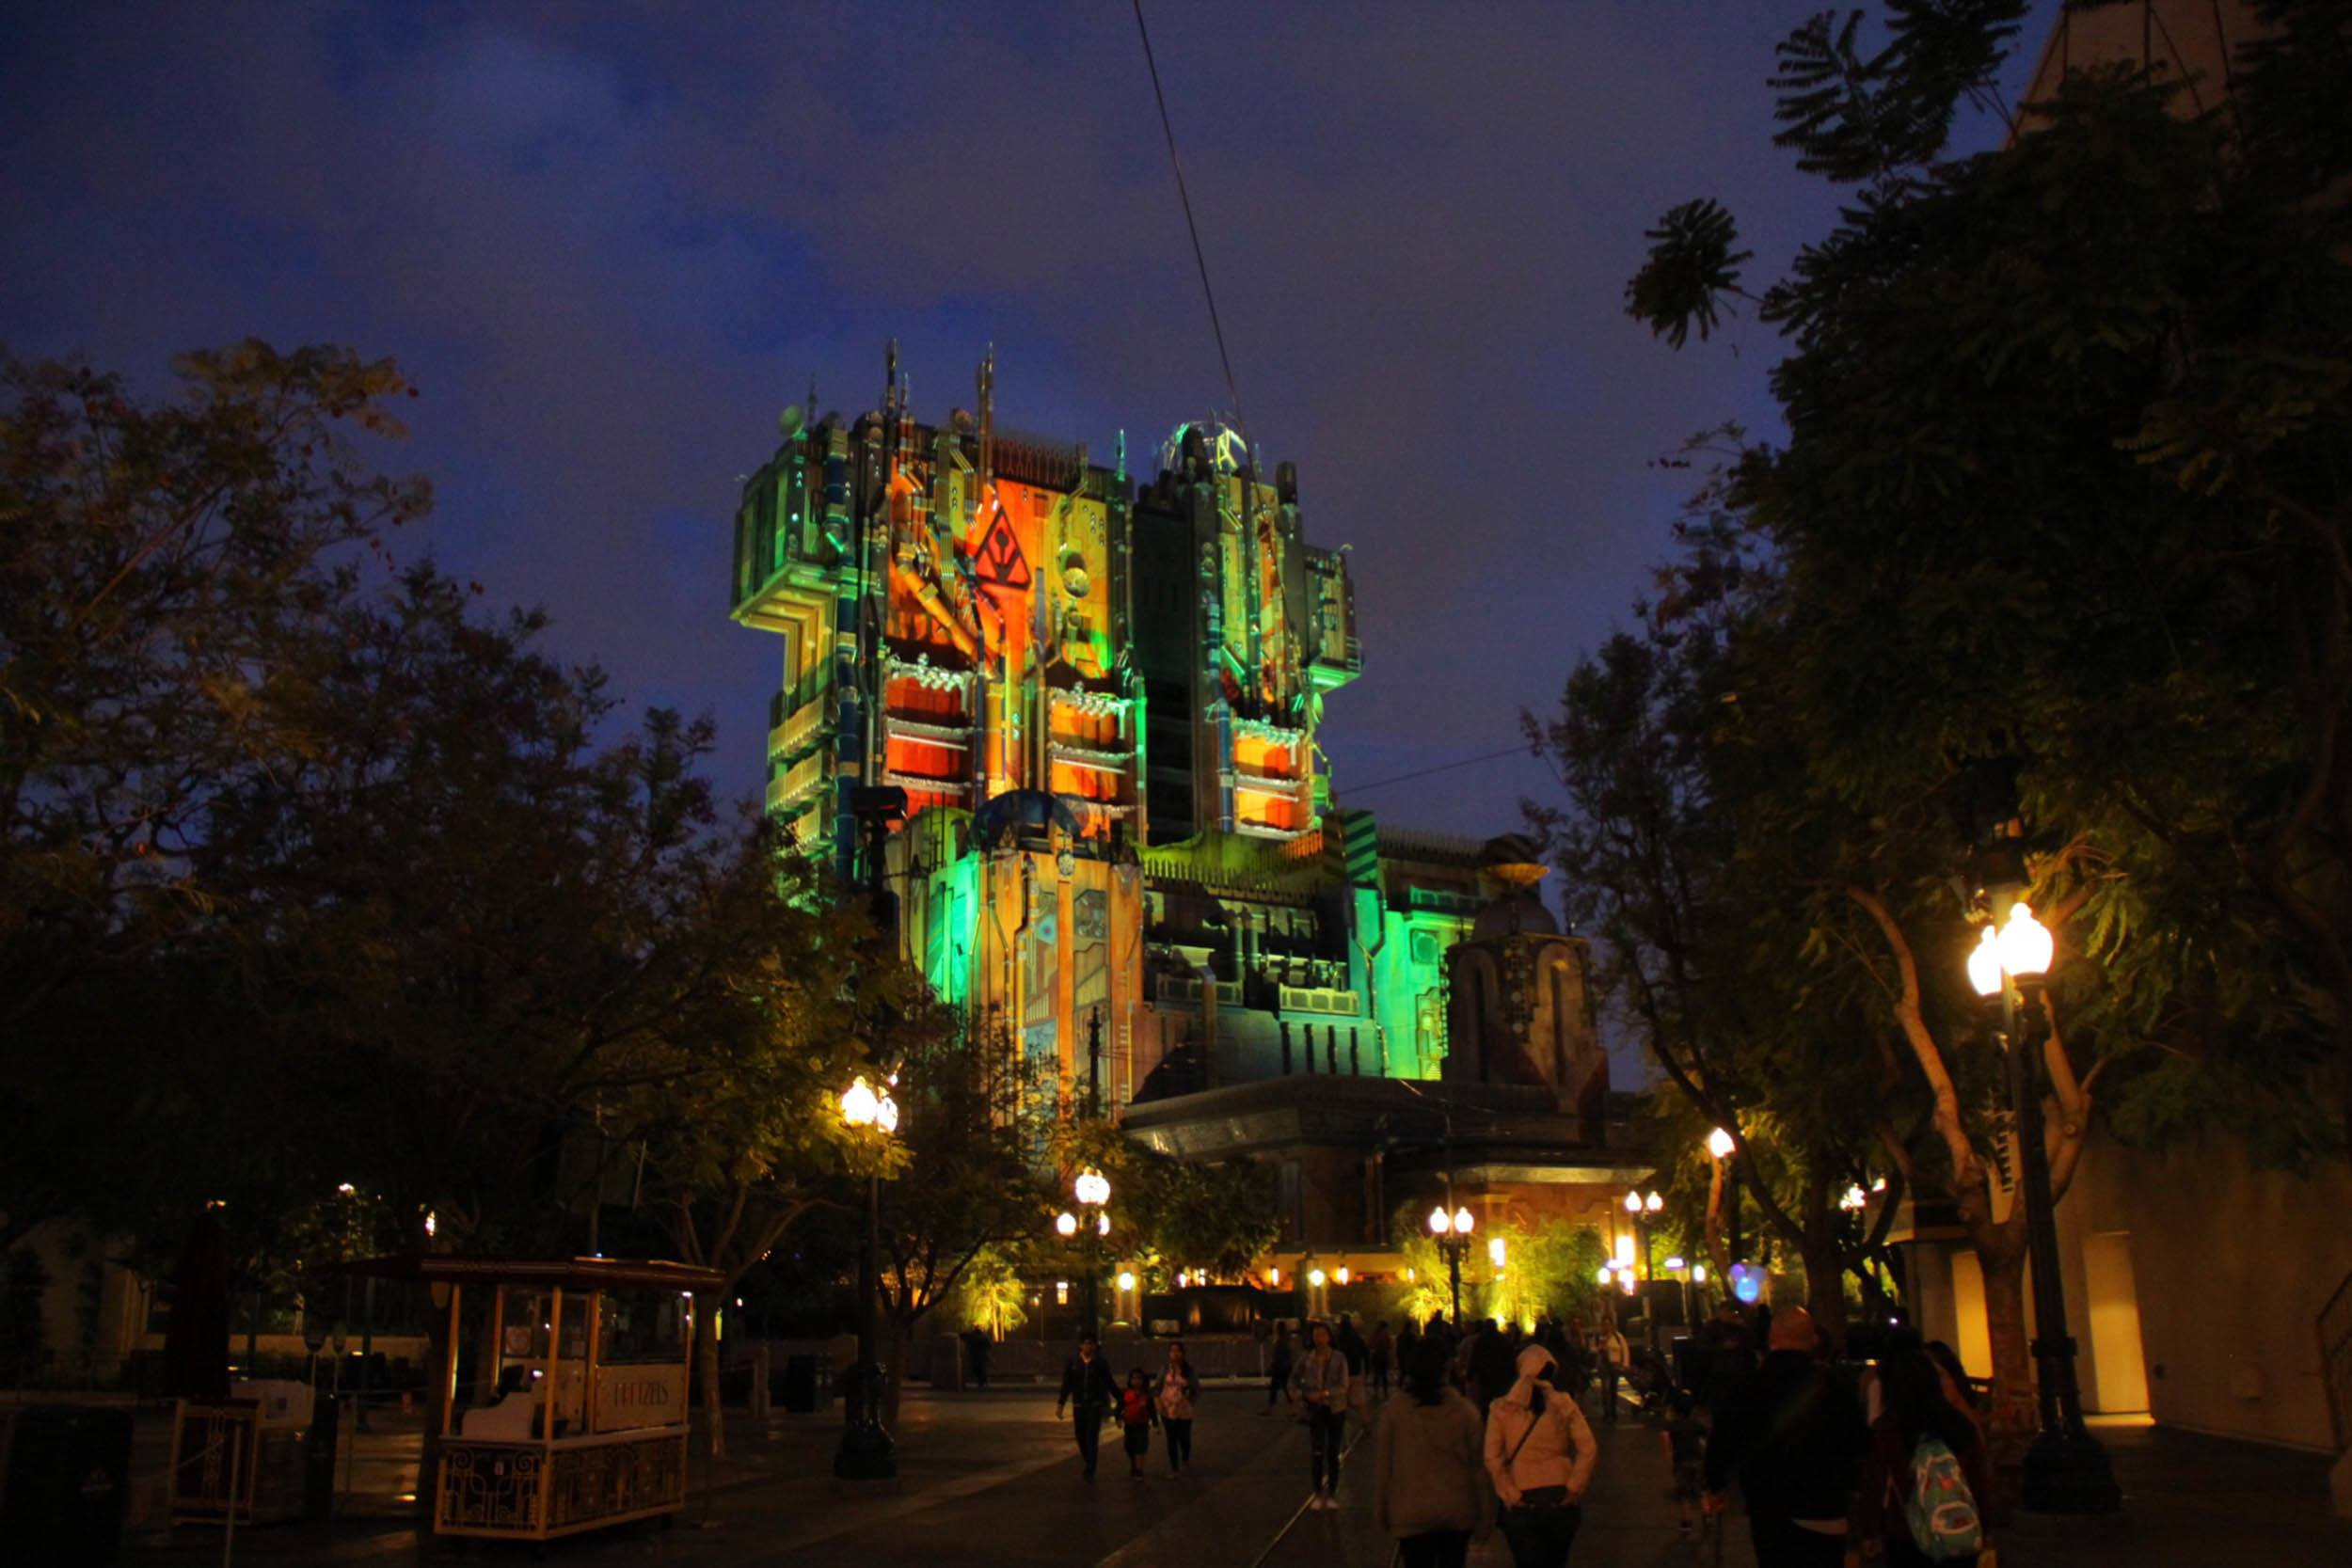 Guardians of the Galaxy – Mission: BREAKOUT! Comes Alive at Night!